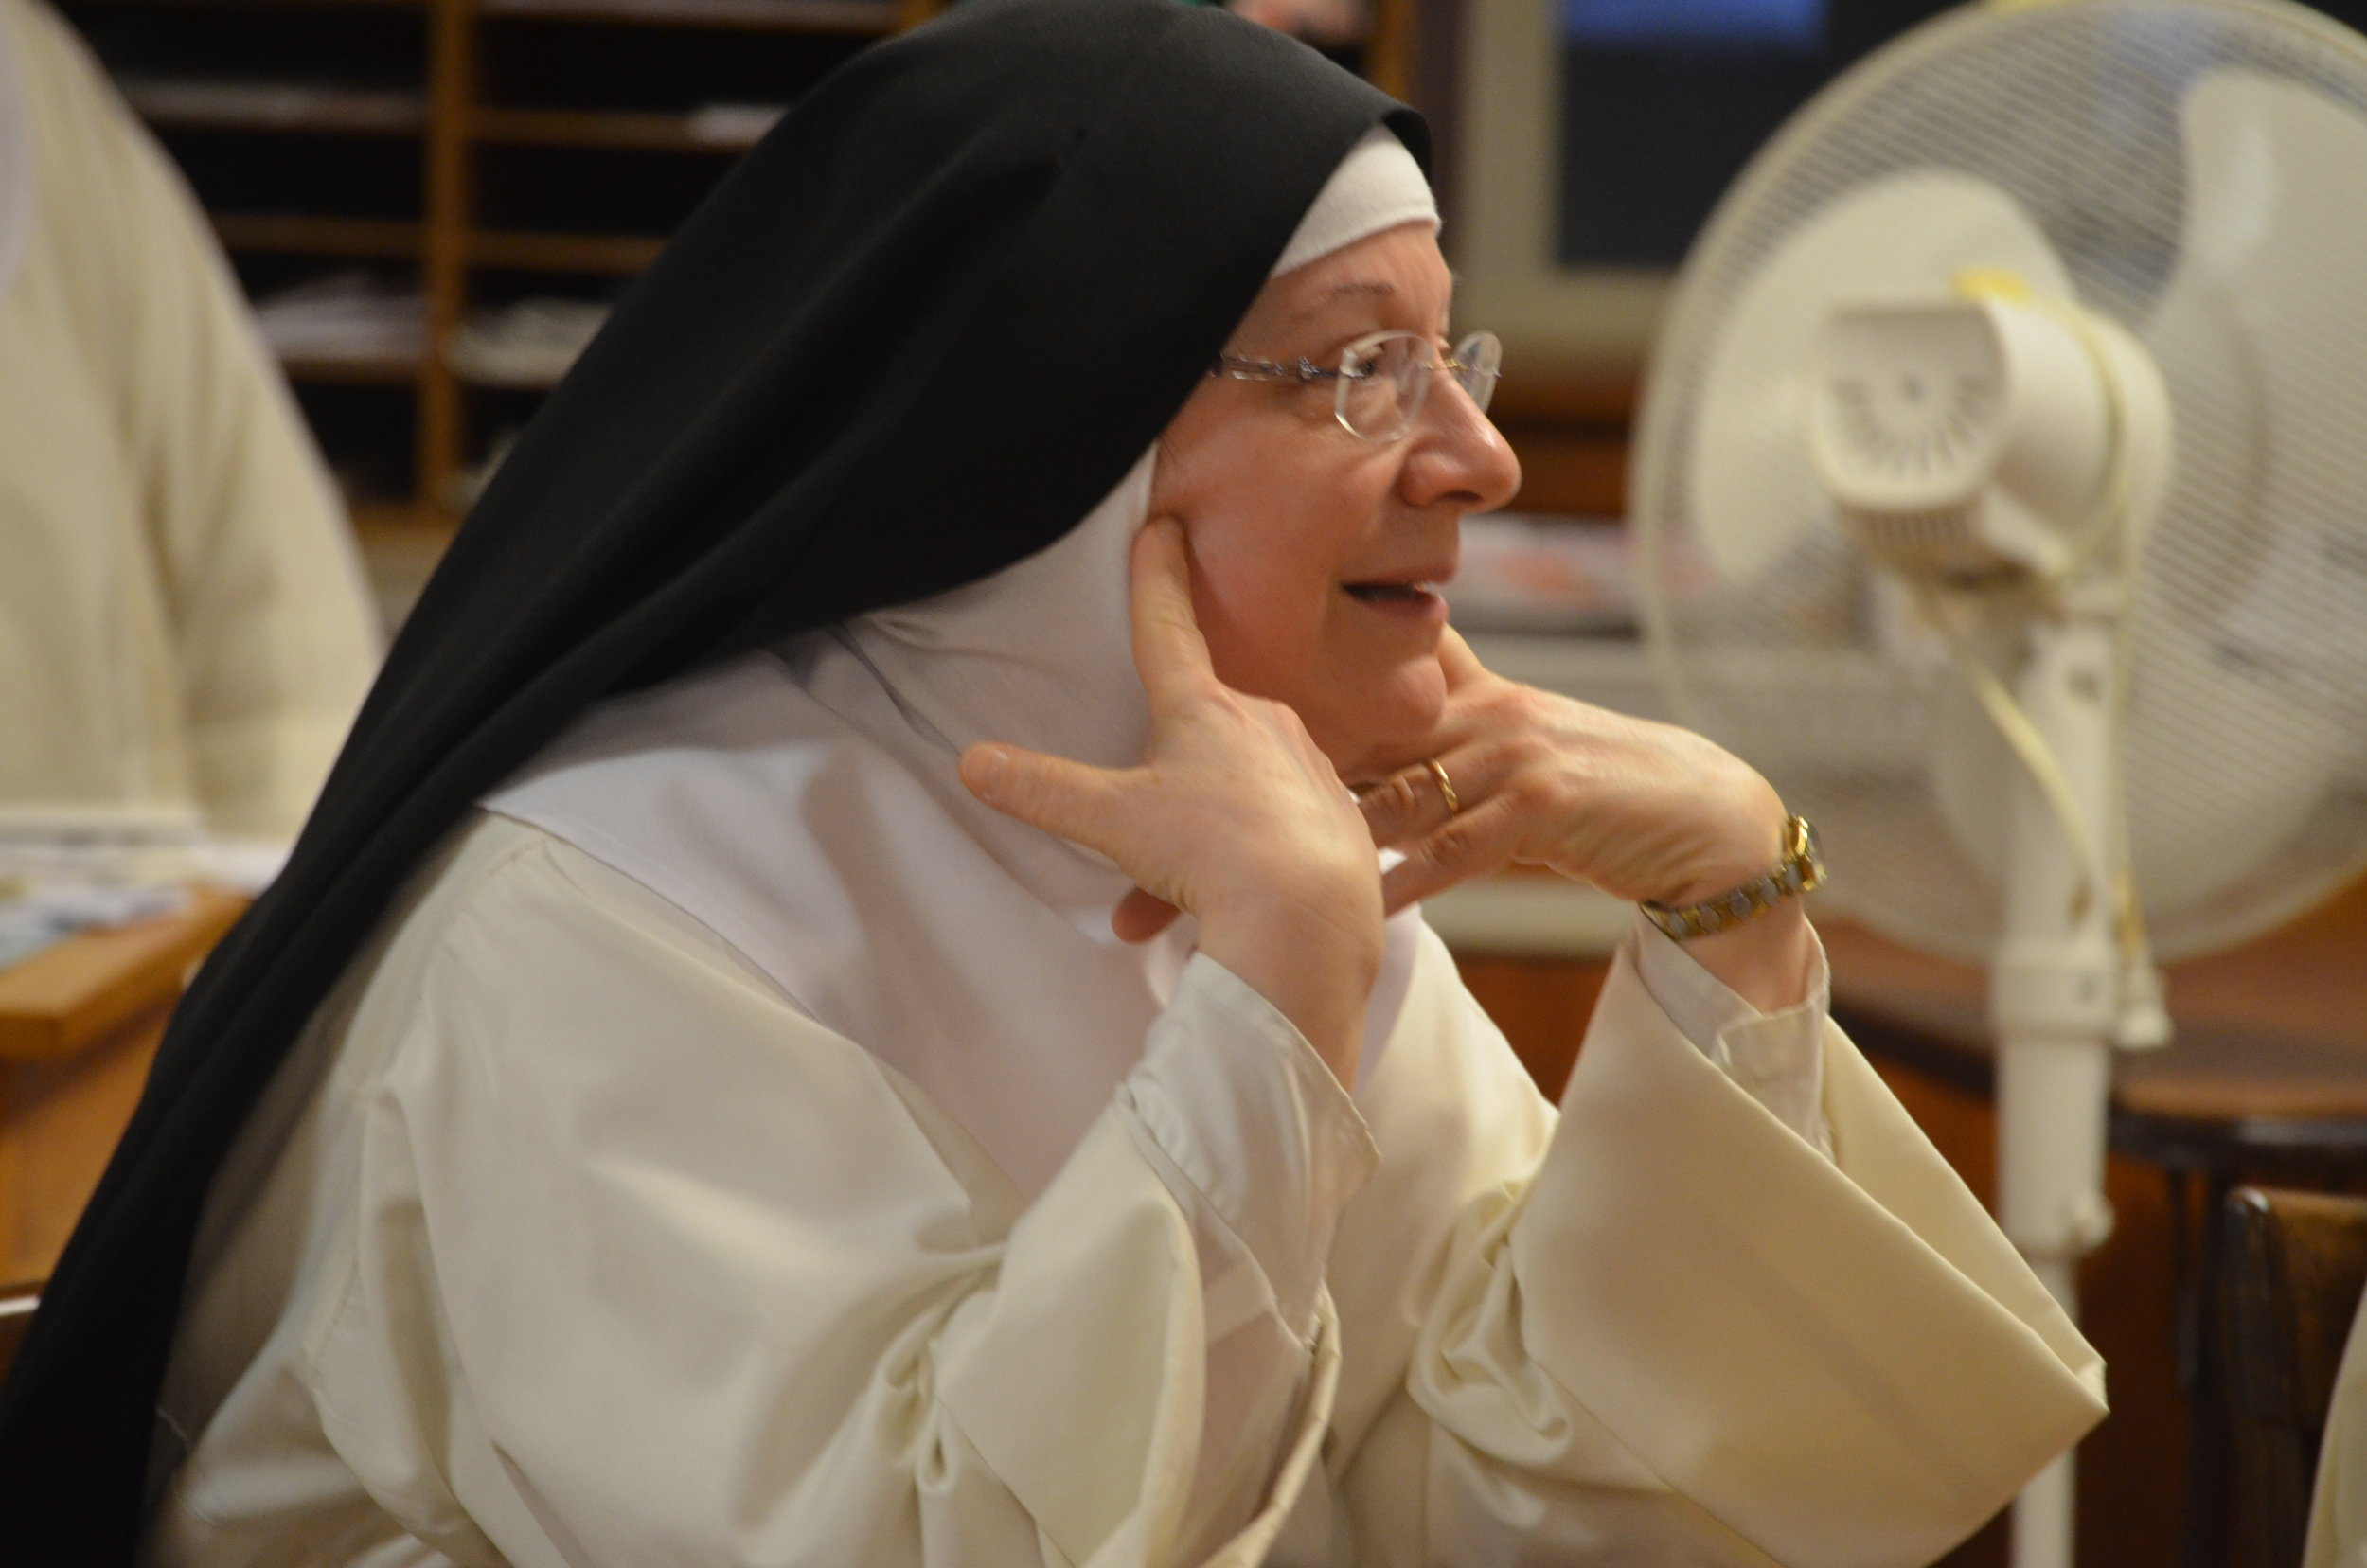 Sr. Charia Marie and Sr. Denise Marie asks questions and clarify points of discussion.